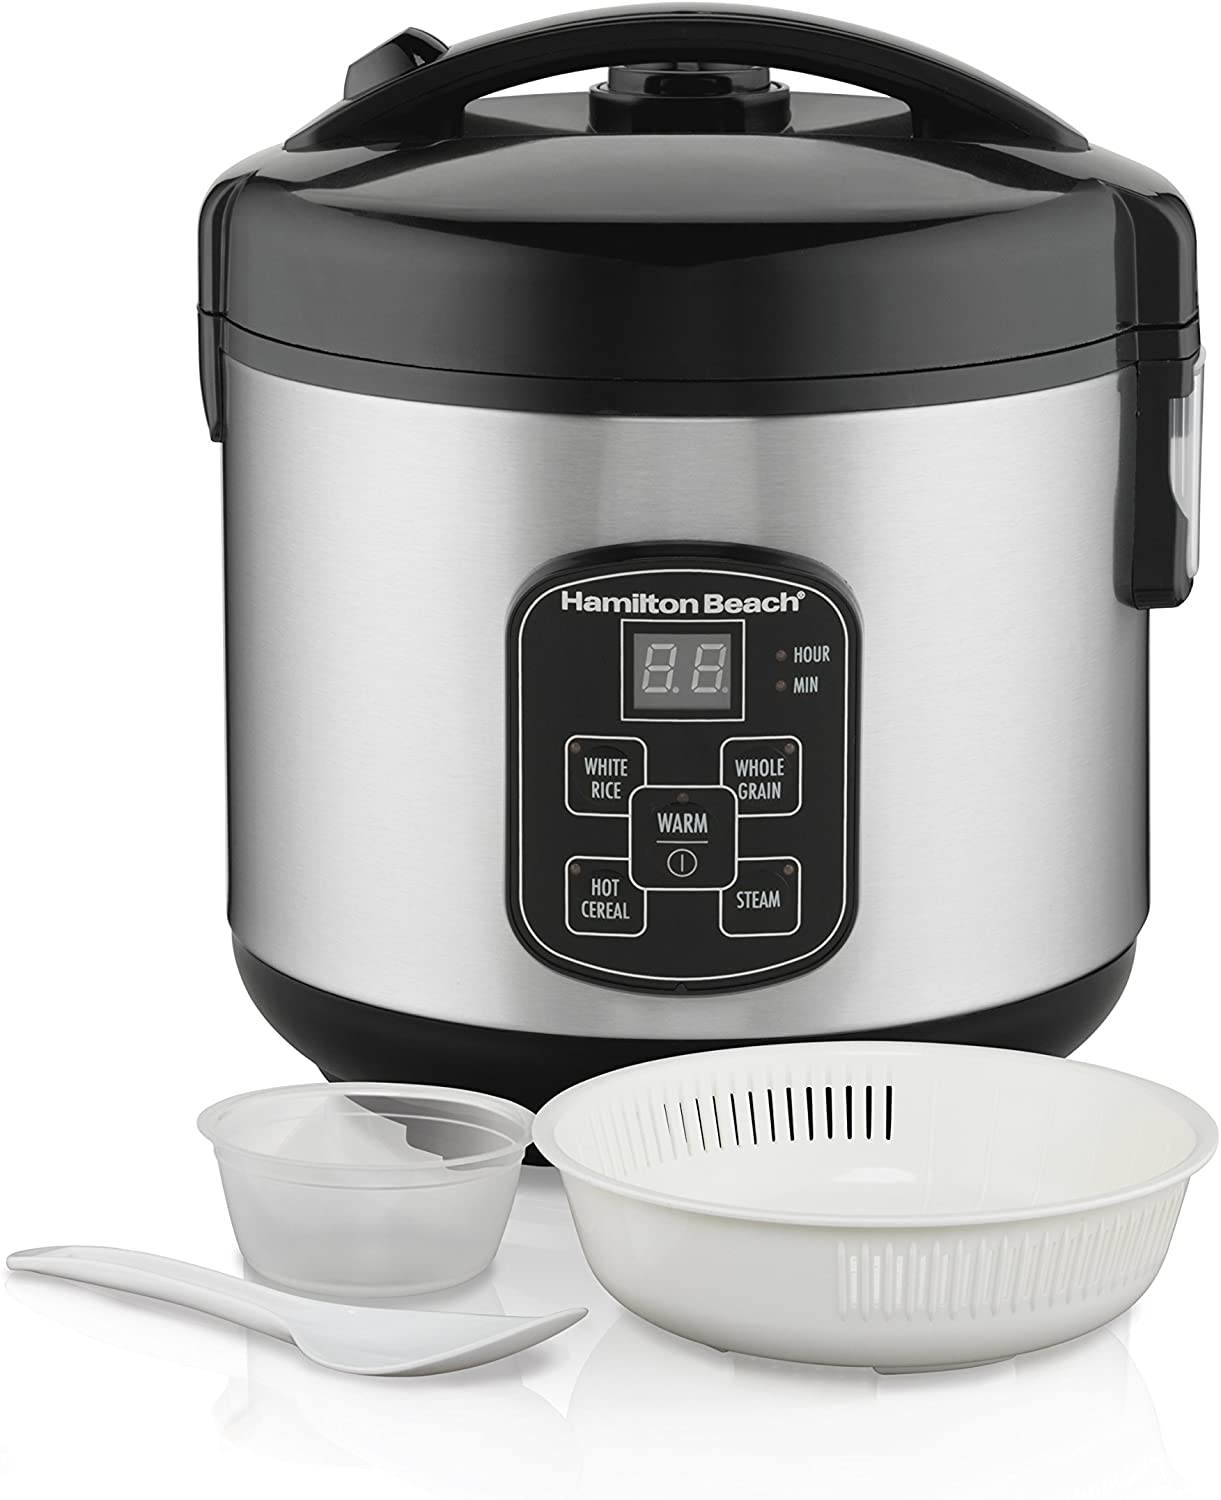 Hamilton Beach Digital Programmable Rice Cooker & Food Steamer, 8 Cups Cooked (4 Uncooked), With Steam & Rinse Basket, Stainless Steel (37518)